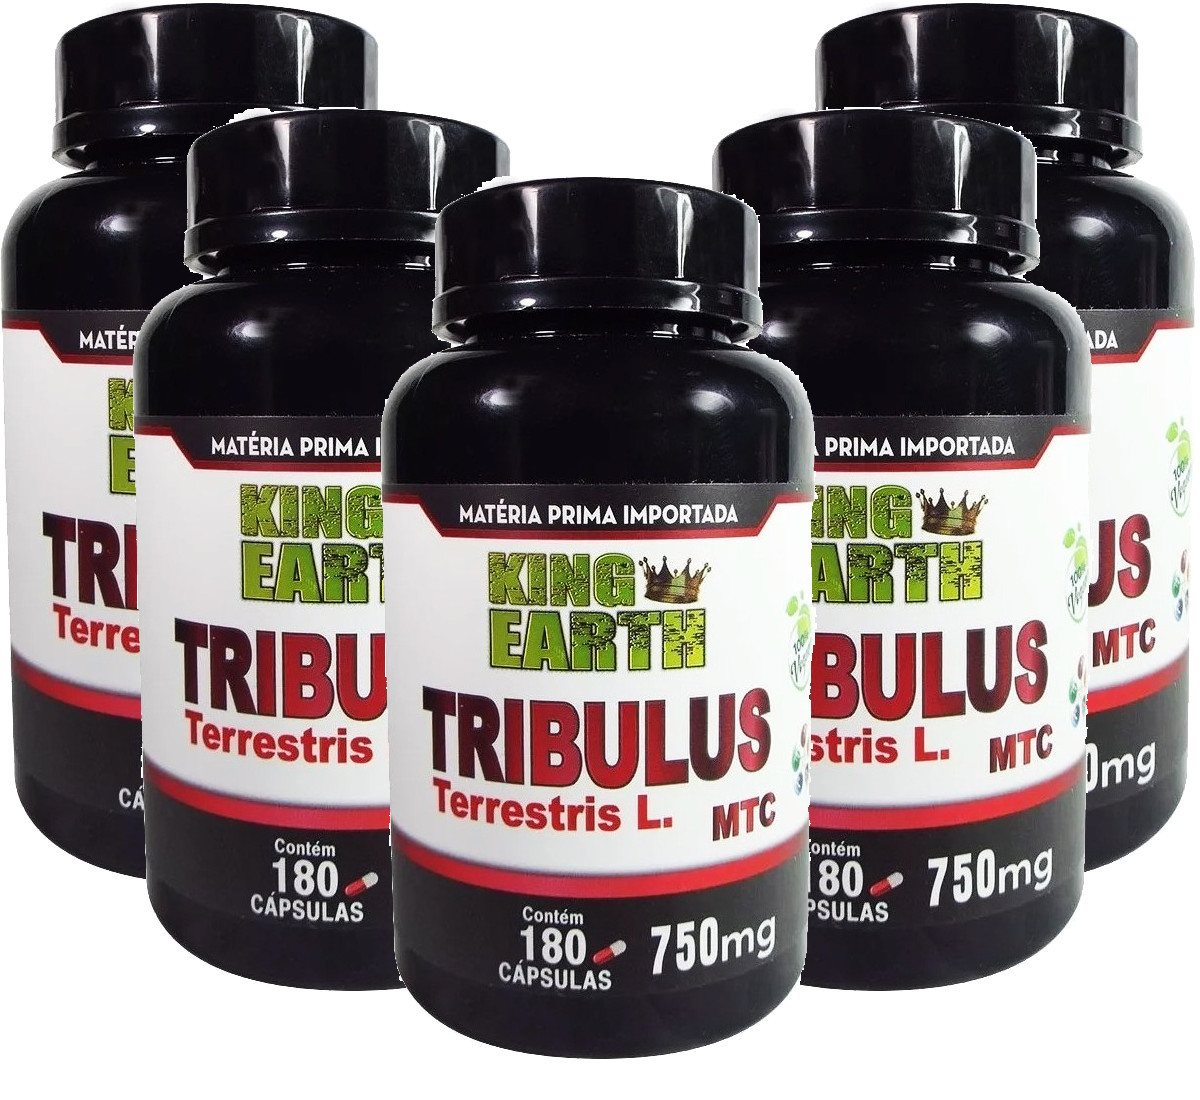 Kit C/ 5 Un Tribulus Terrestris L. 750mg 900 Cáps King Earth